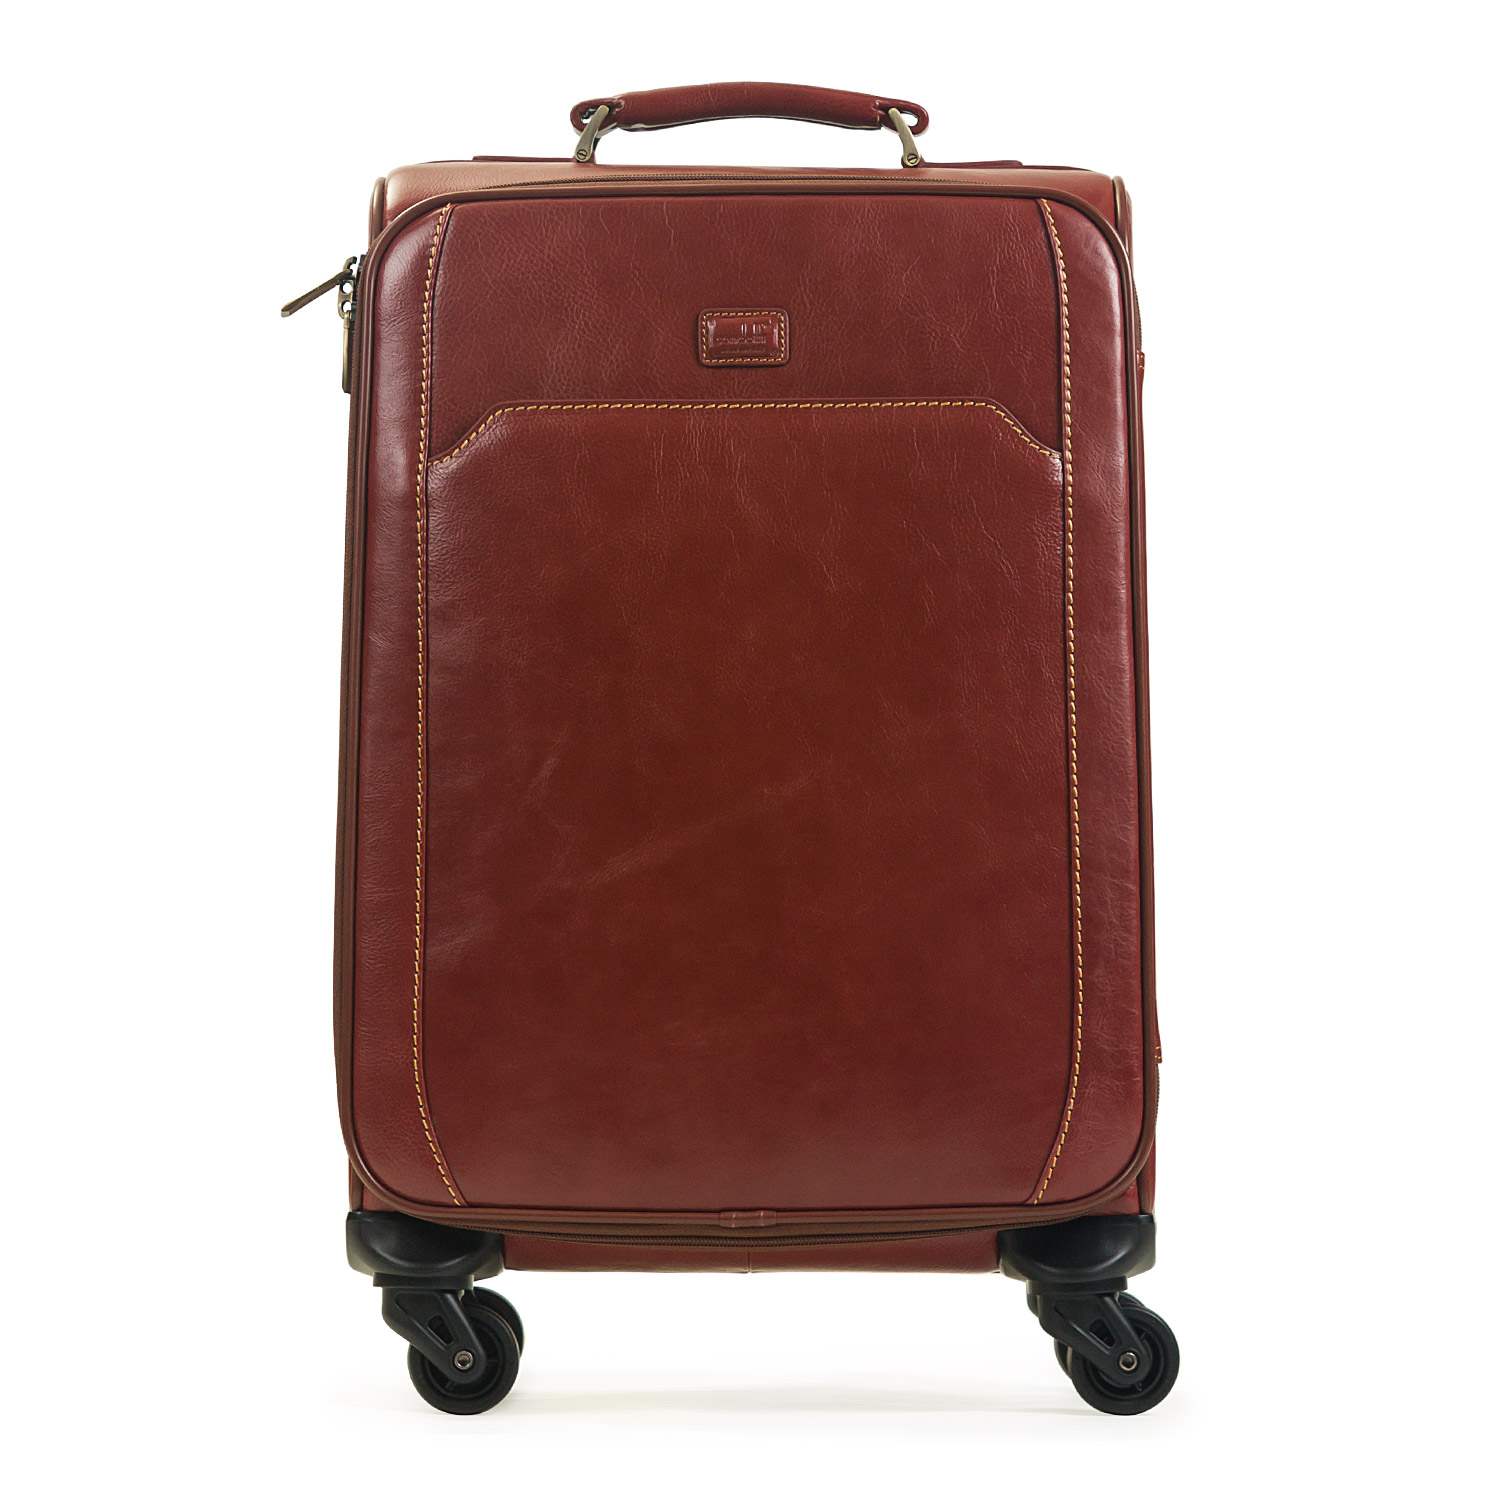 Condotti 4 Wheel Trolley Bag